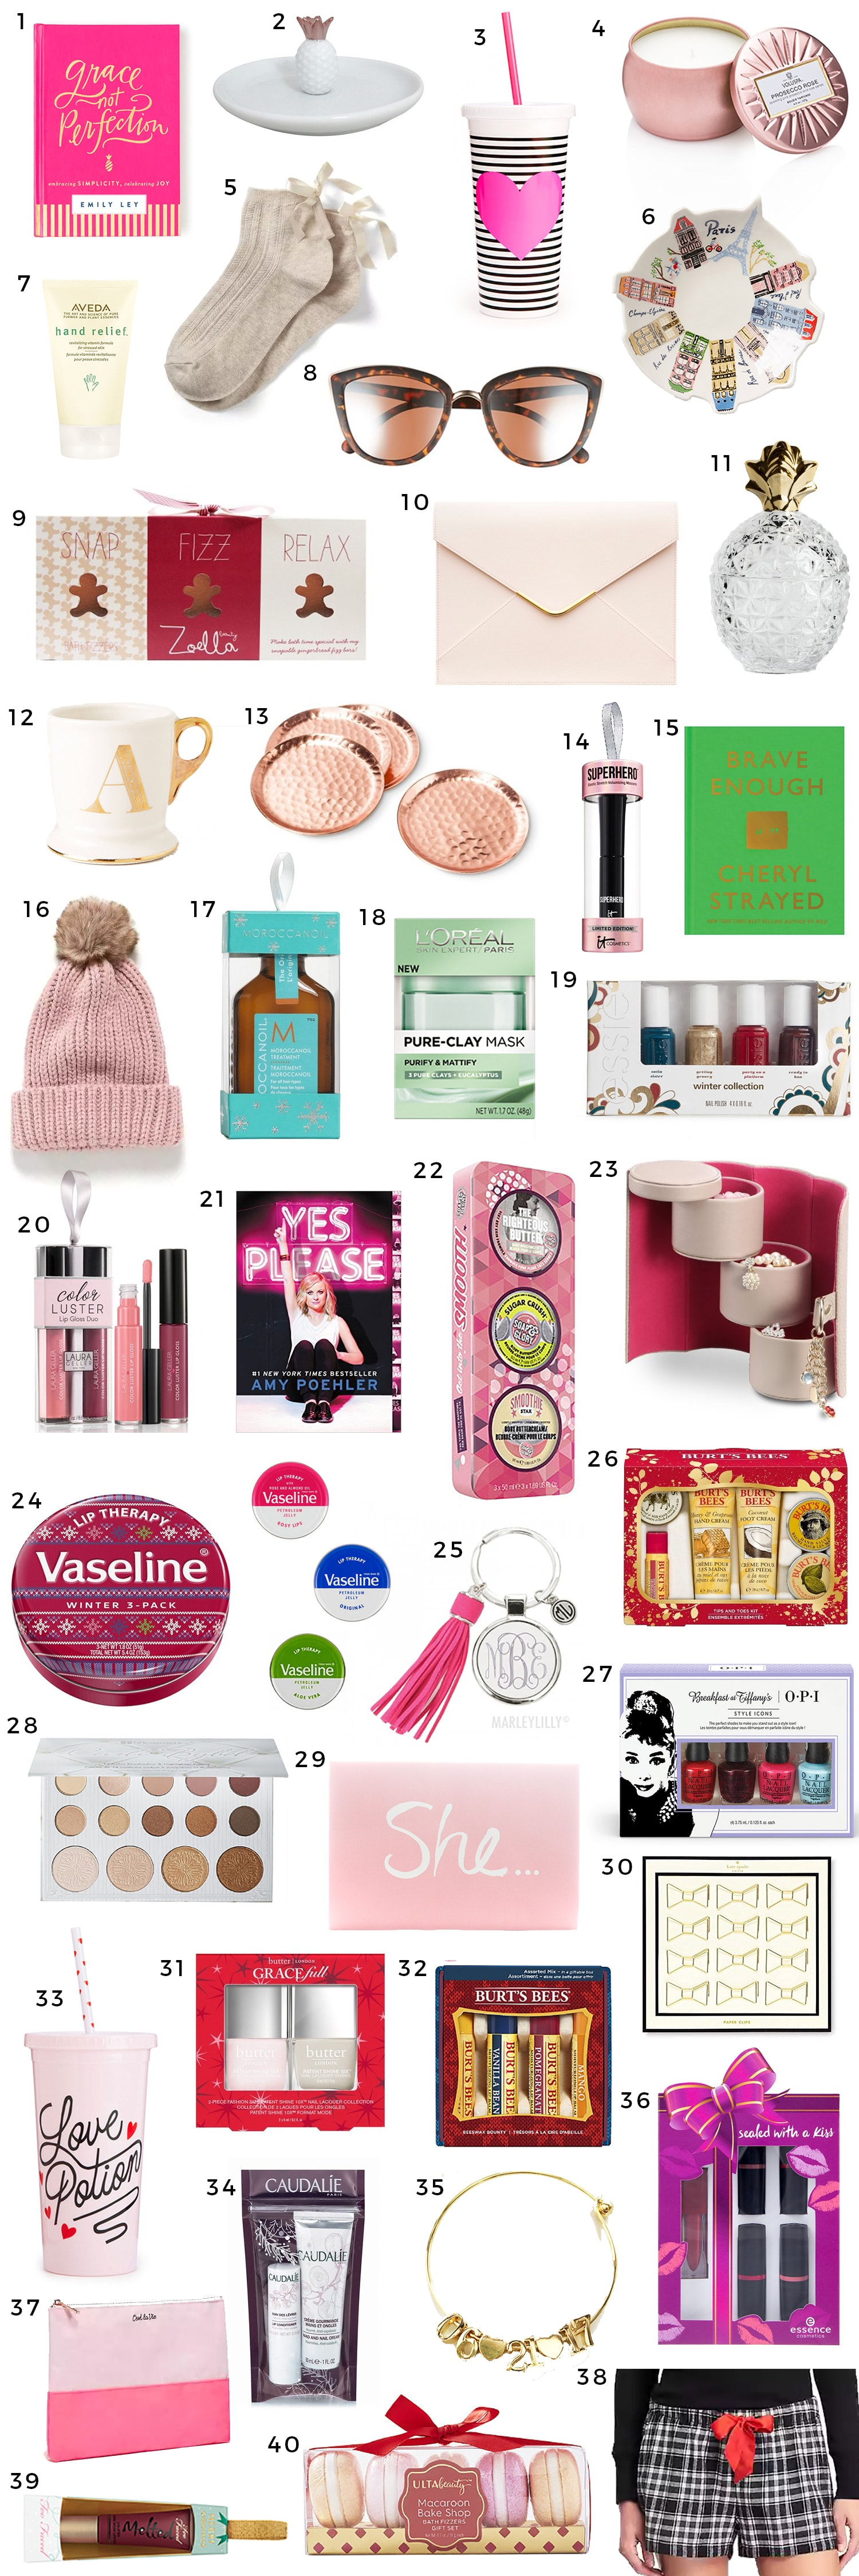 The Best Christmas Gift Ideas For Women Under 15 Ashley